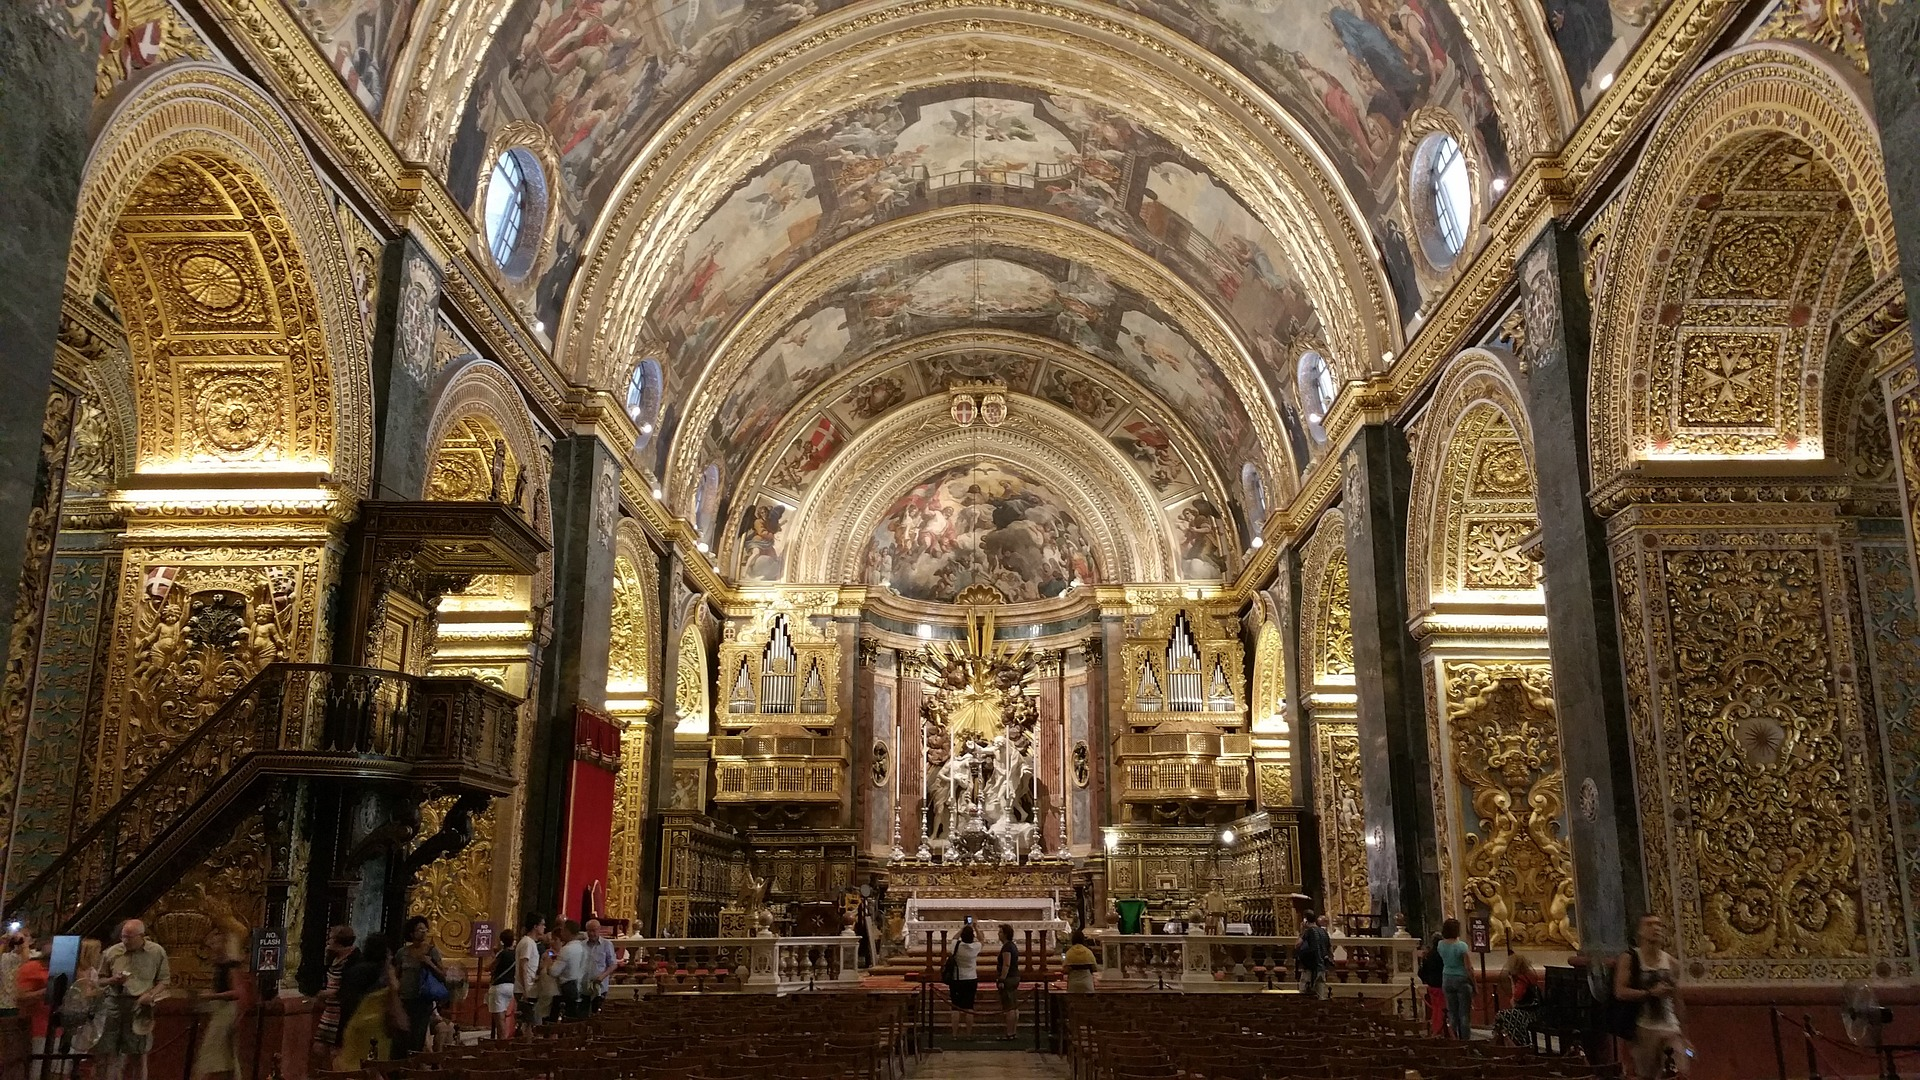 Inside The Co-Cathedral of St. John's